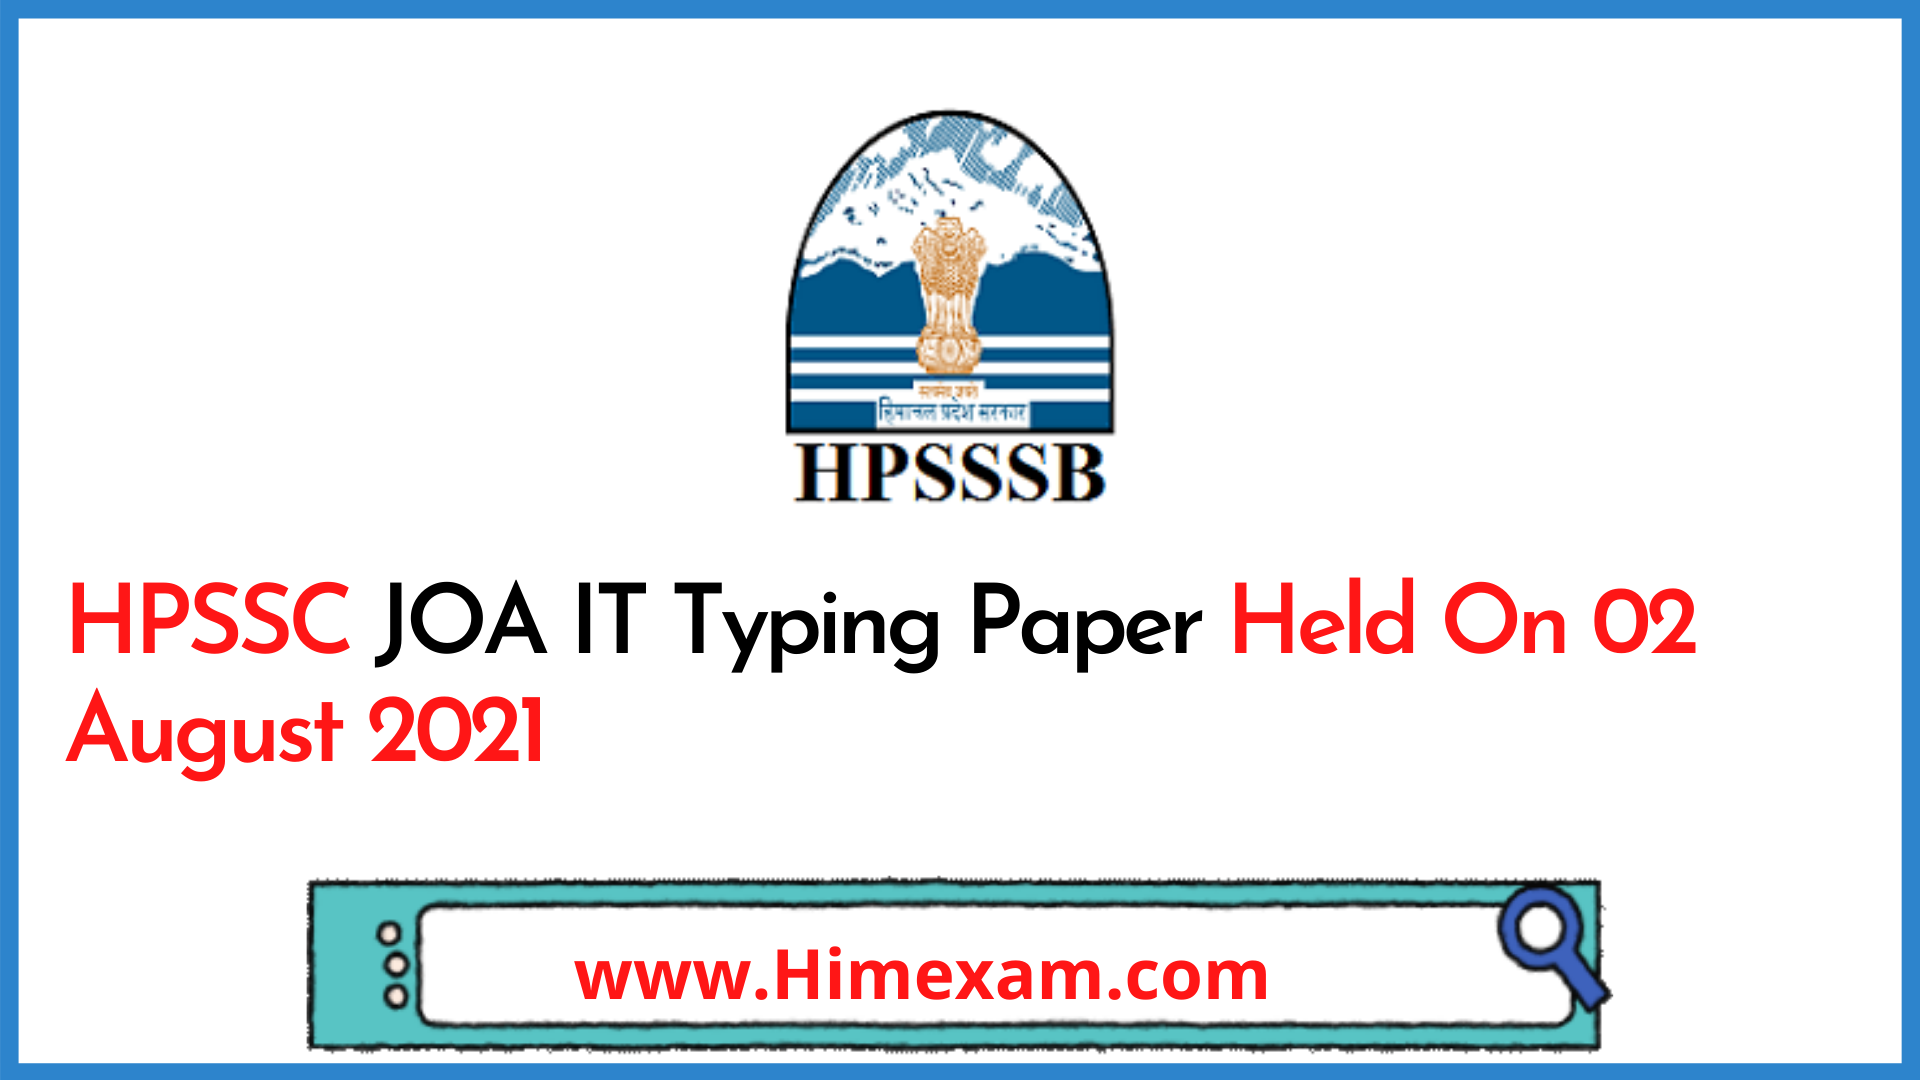 HPSSC JOA IT Typing Paper Held On 02 August 2021